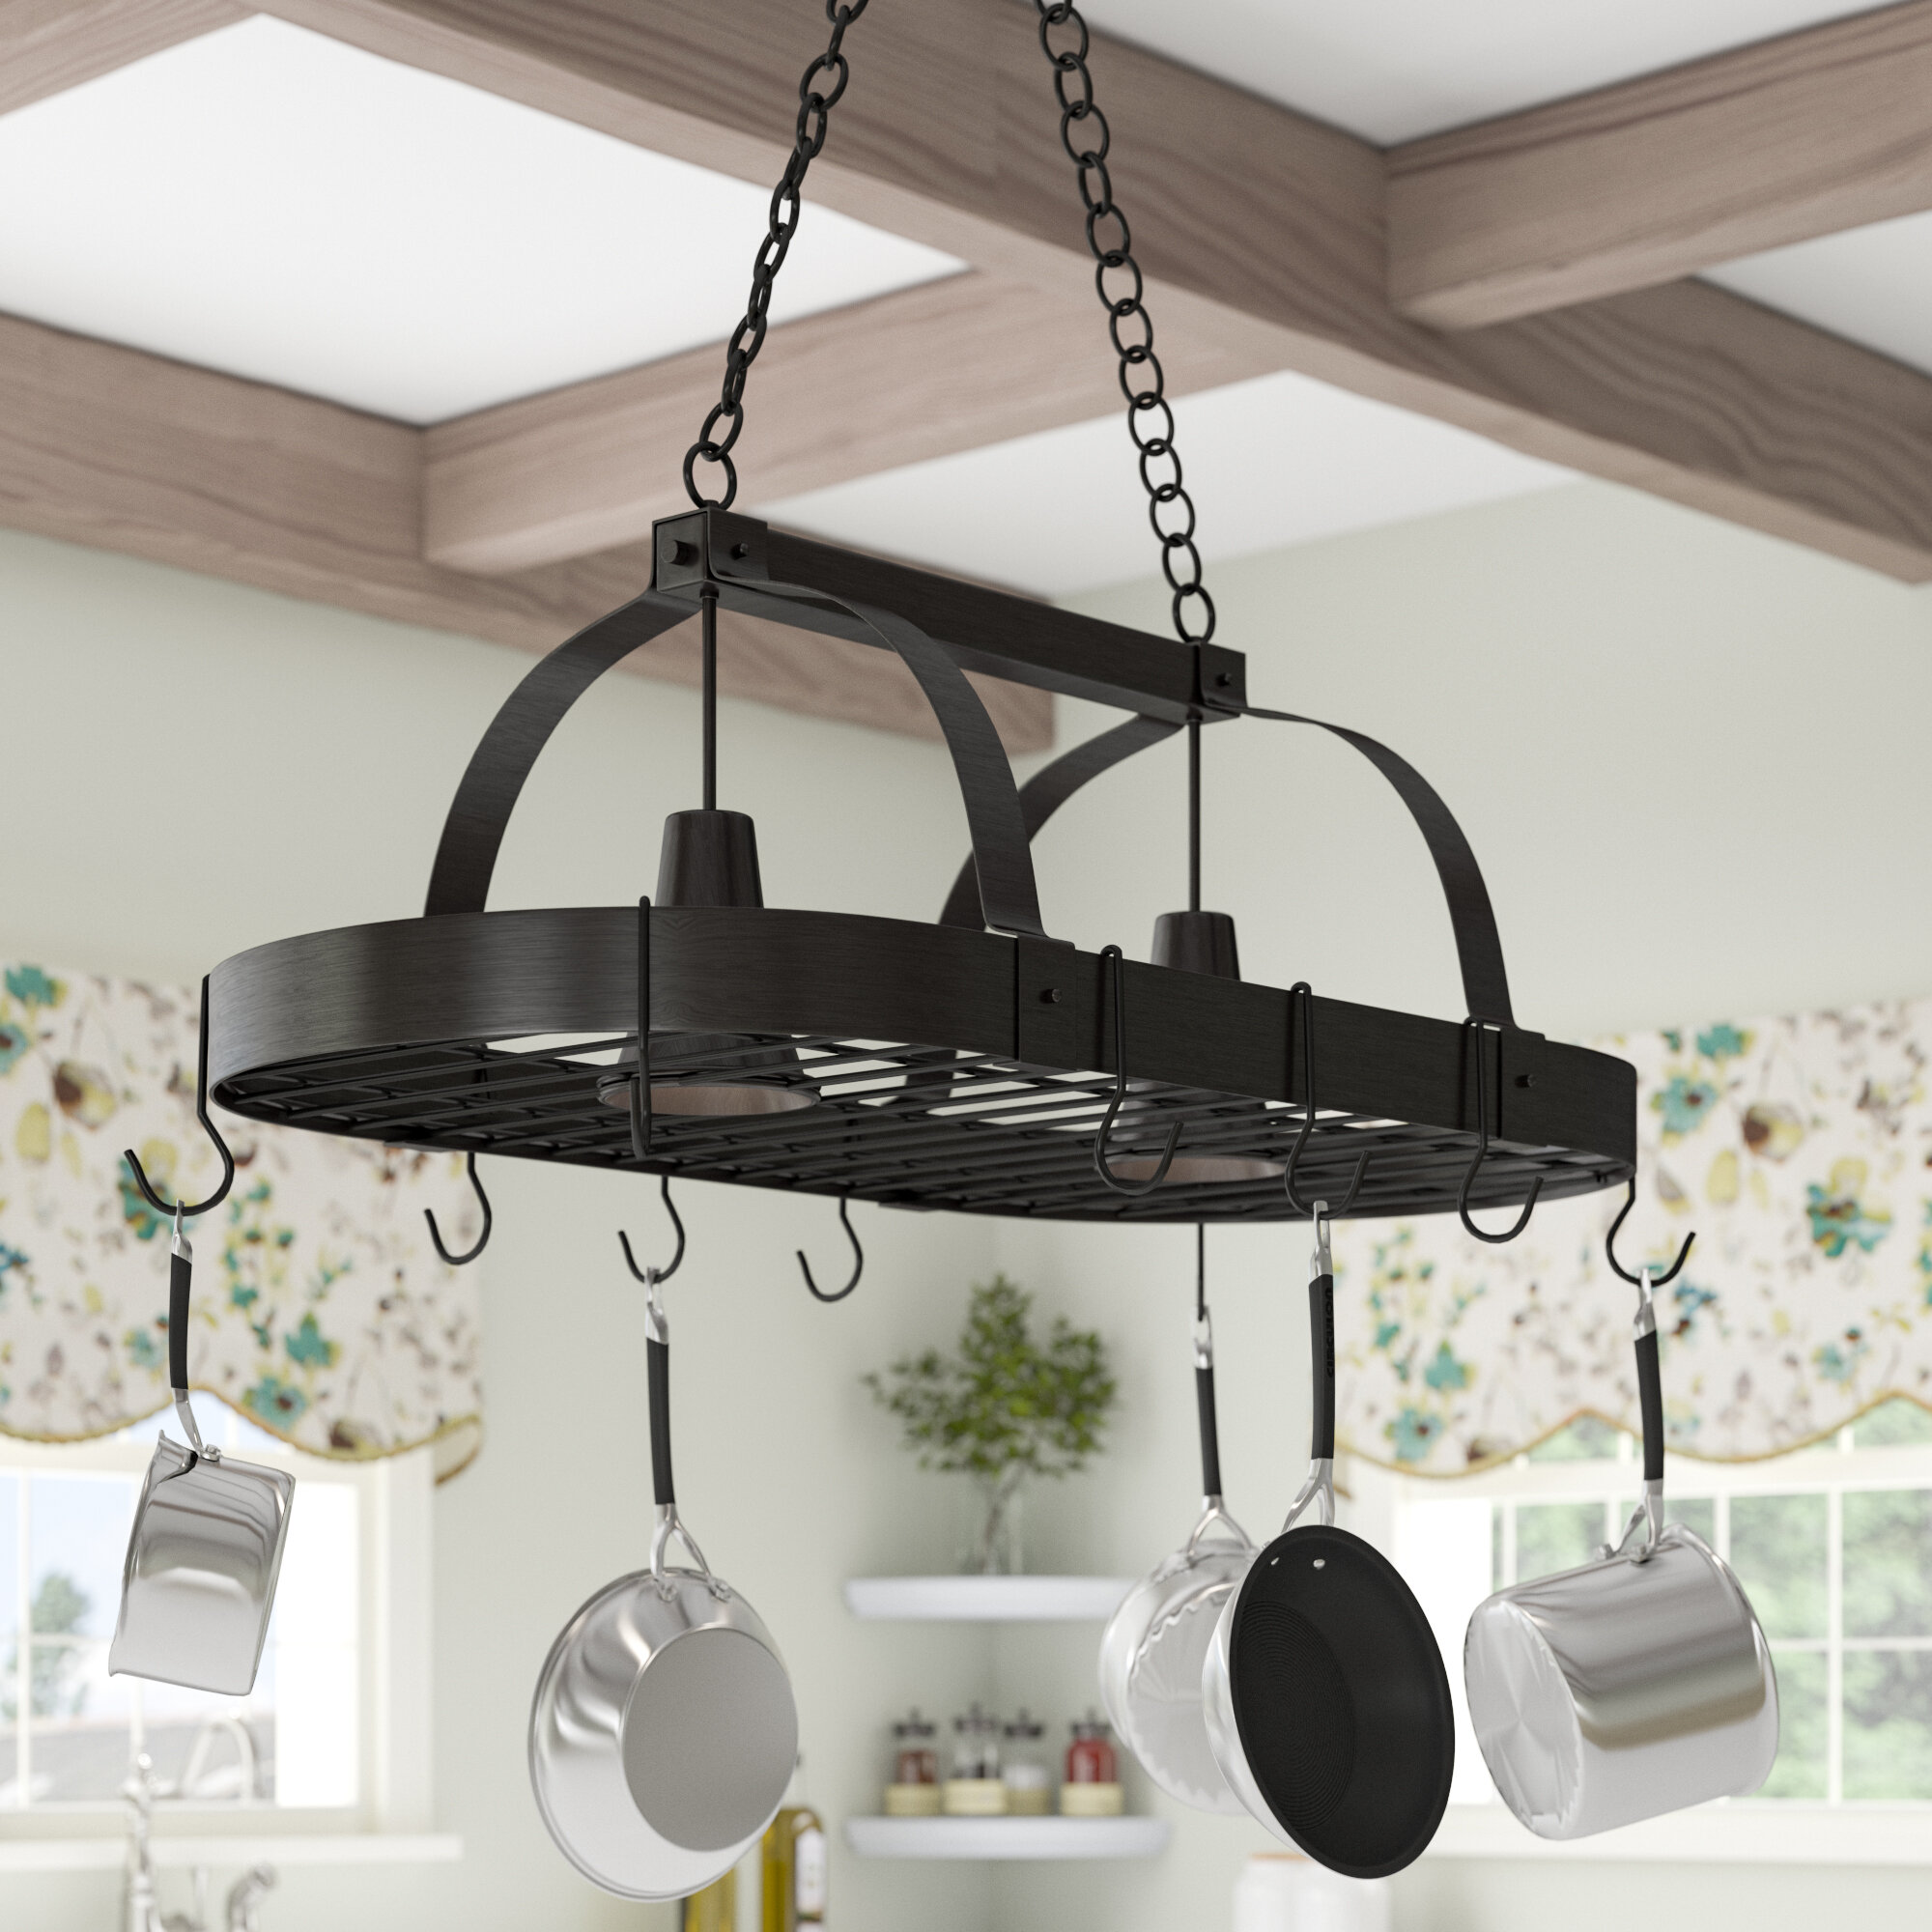 Picture of: Darby Home Co 2 Light Kitchen Hanging Pot Rack Reviews